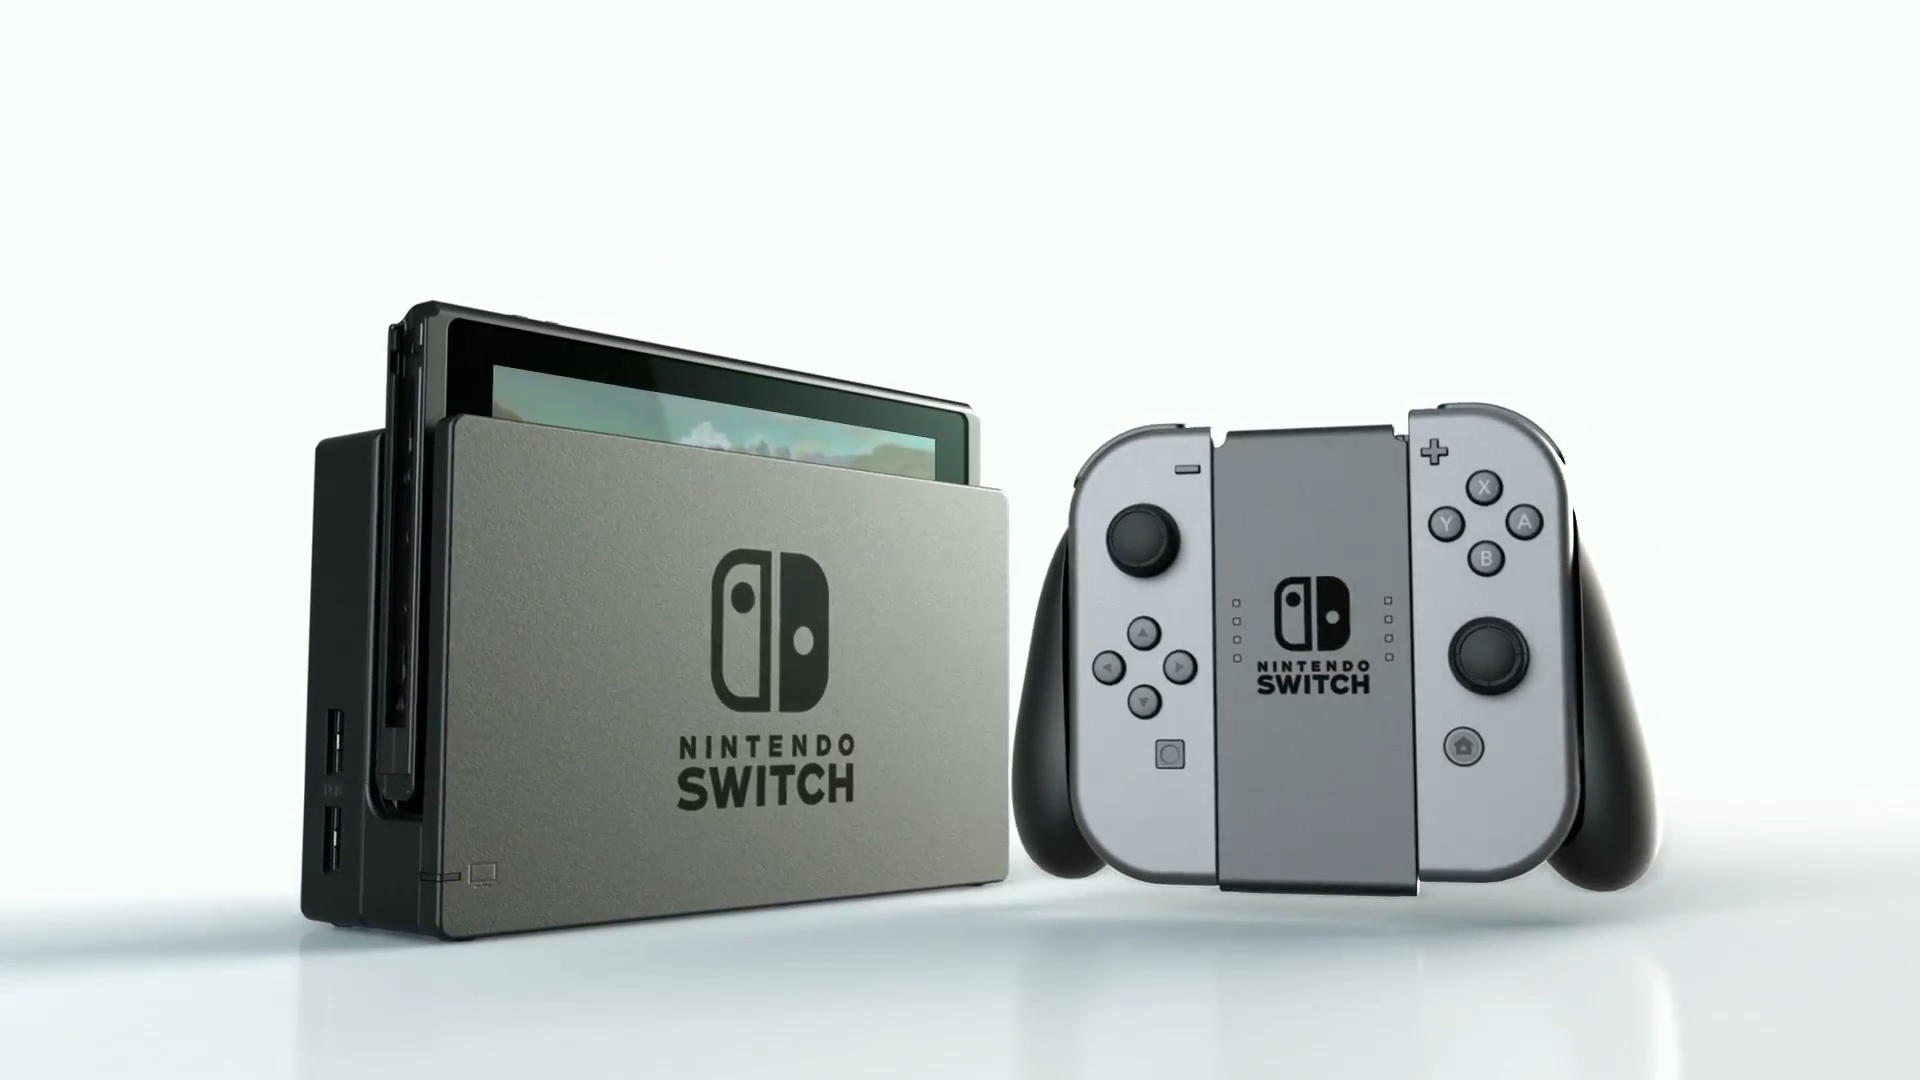 Nintendo Switch Black Computer Wallpaper 916 1920x1080 Px Pickywallpapers Com